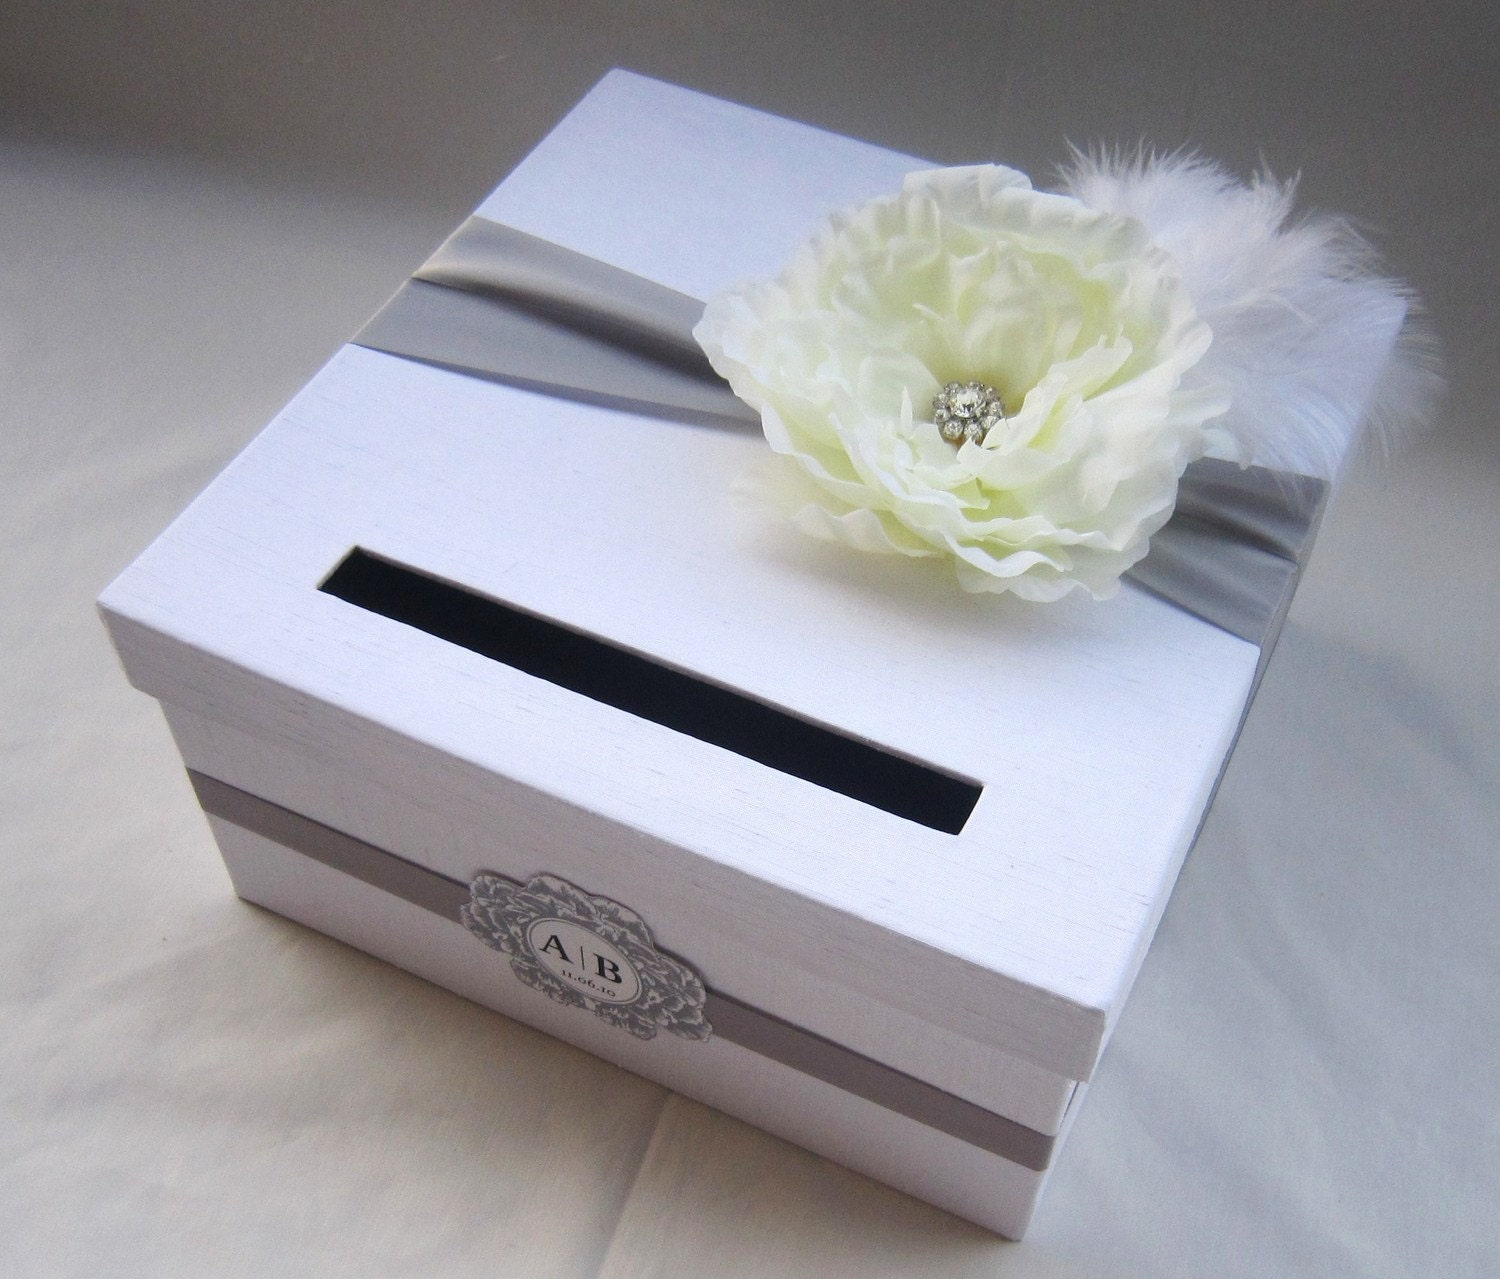 DIY Cardbox Project Wedding – Wedding Money Card Box